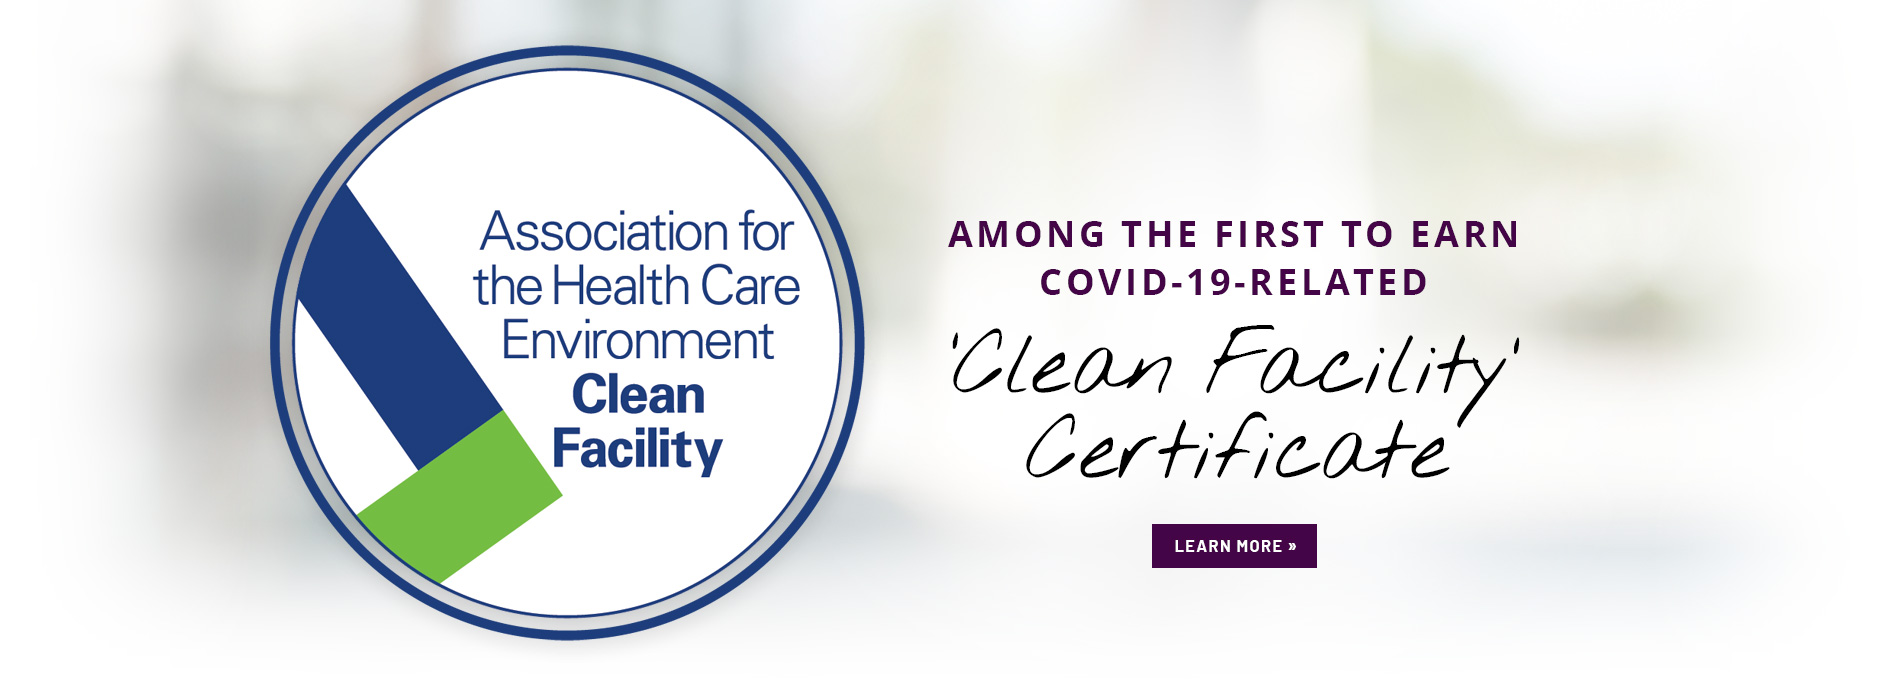 Saratoga Hospital amont the first to earn covid-19 related clean facility certification